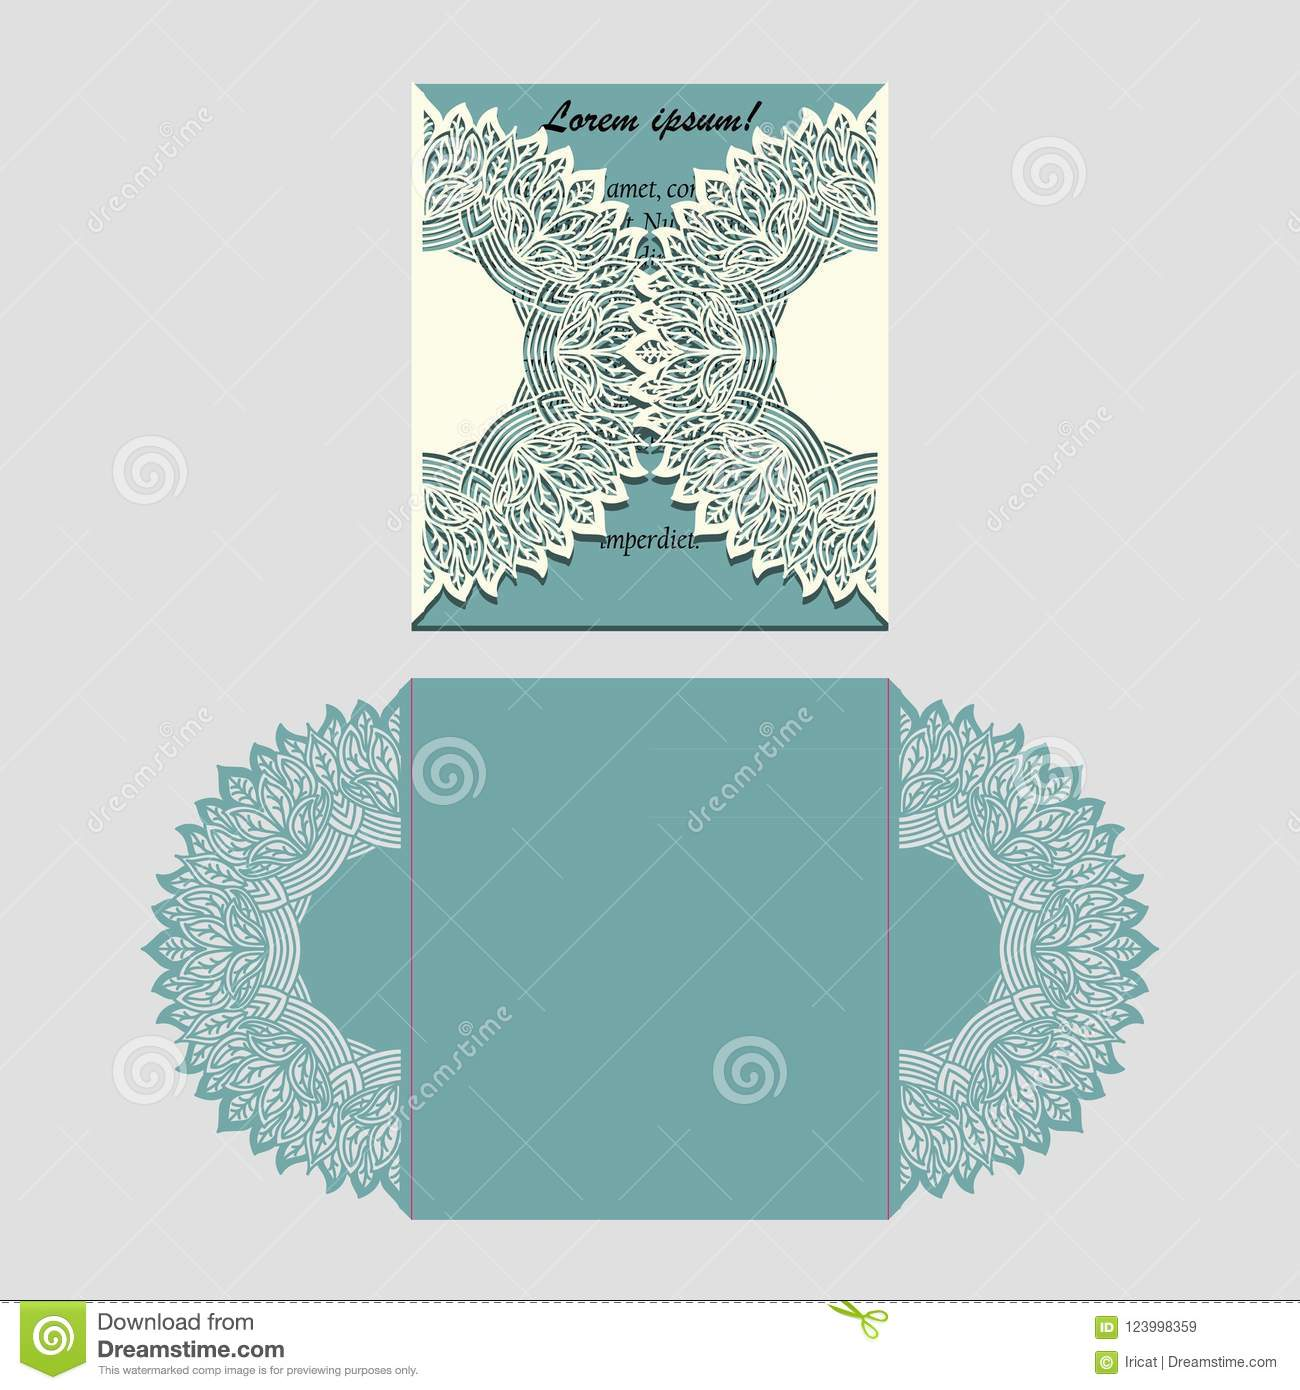 Laser Cut Paper Lace Folding Card With Mandala Element Cutting Template For Wedding Invitation Or